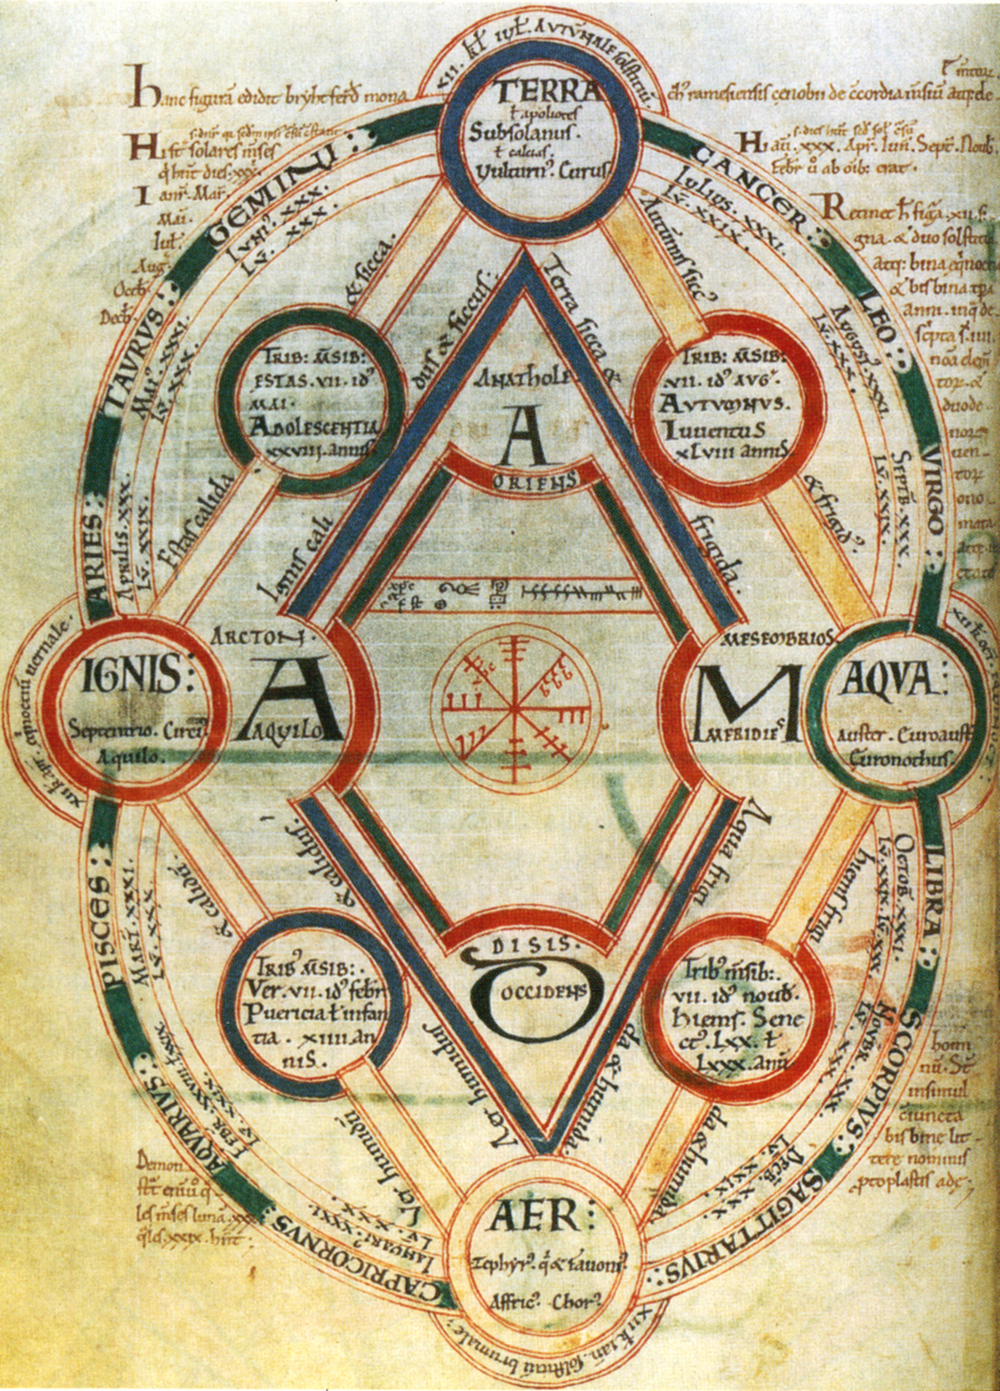 Late 11th century manuscript on the elements, seasons and zodiac (via Wikimedia)